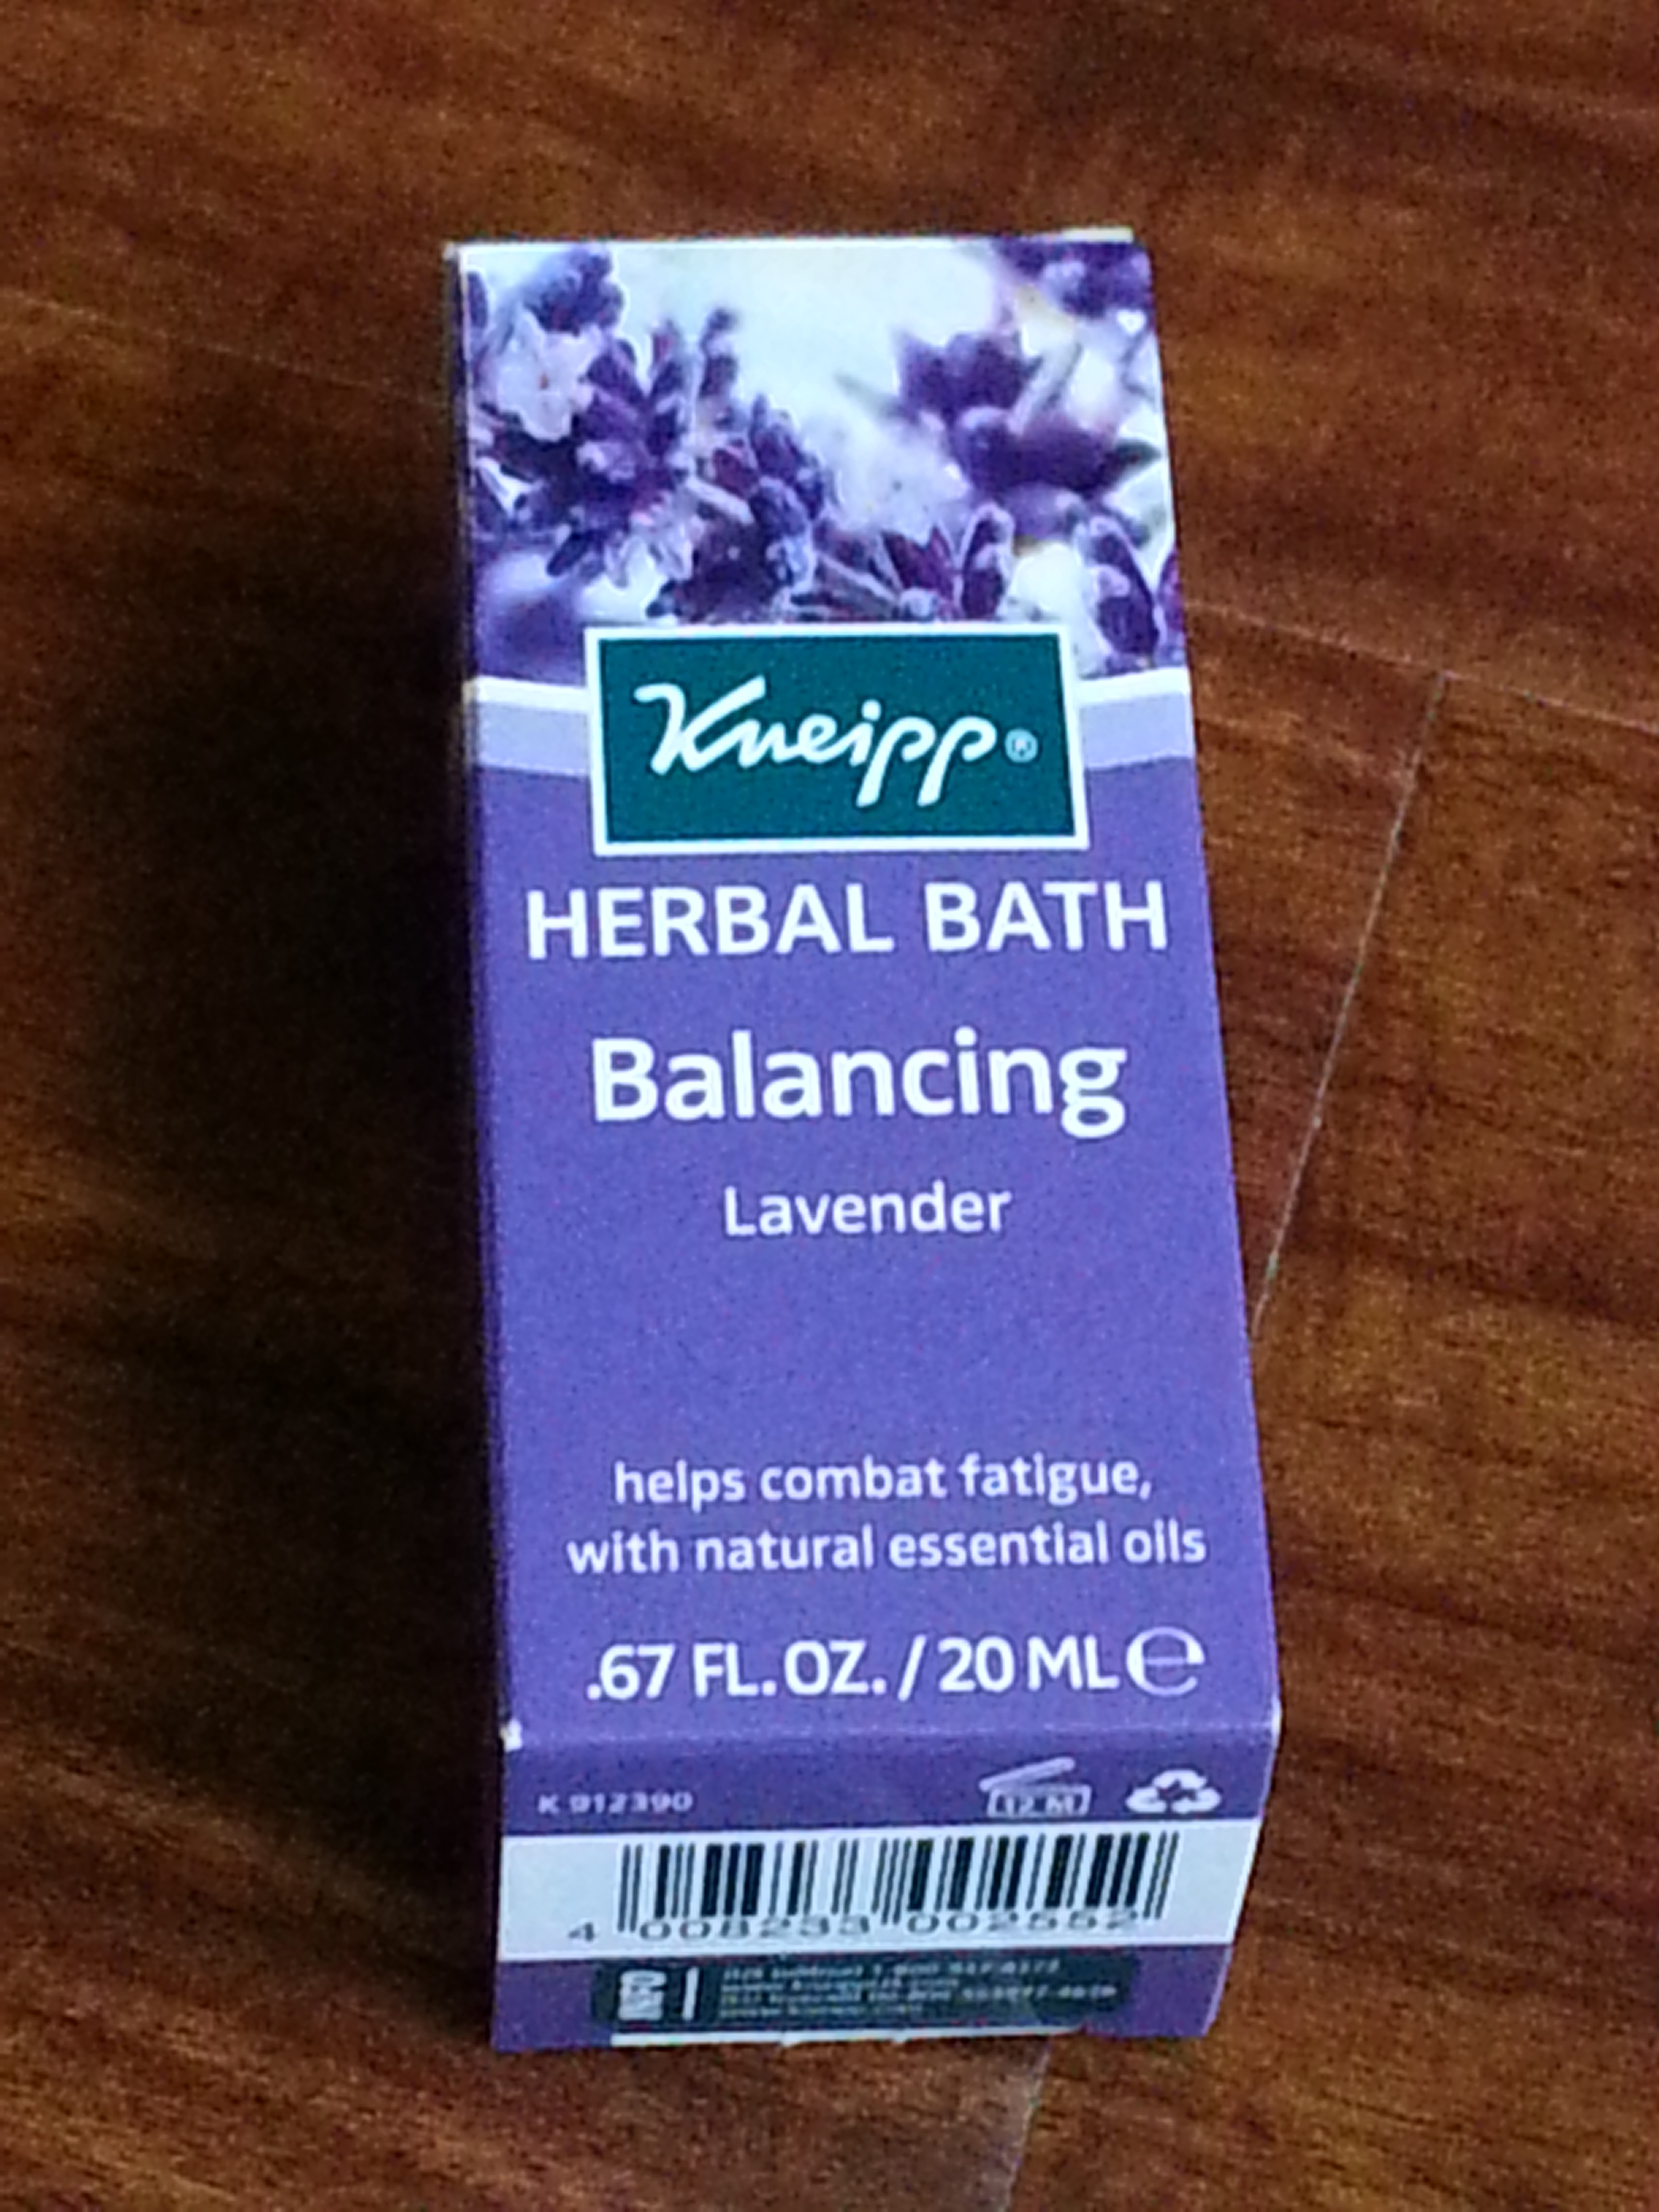 Kneipp Herbal Bath: Balancing in Lavender, $20